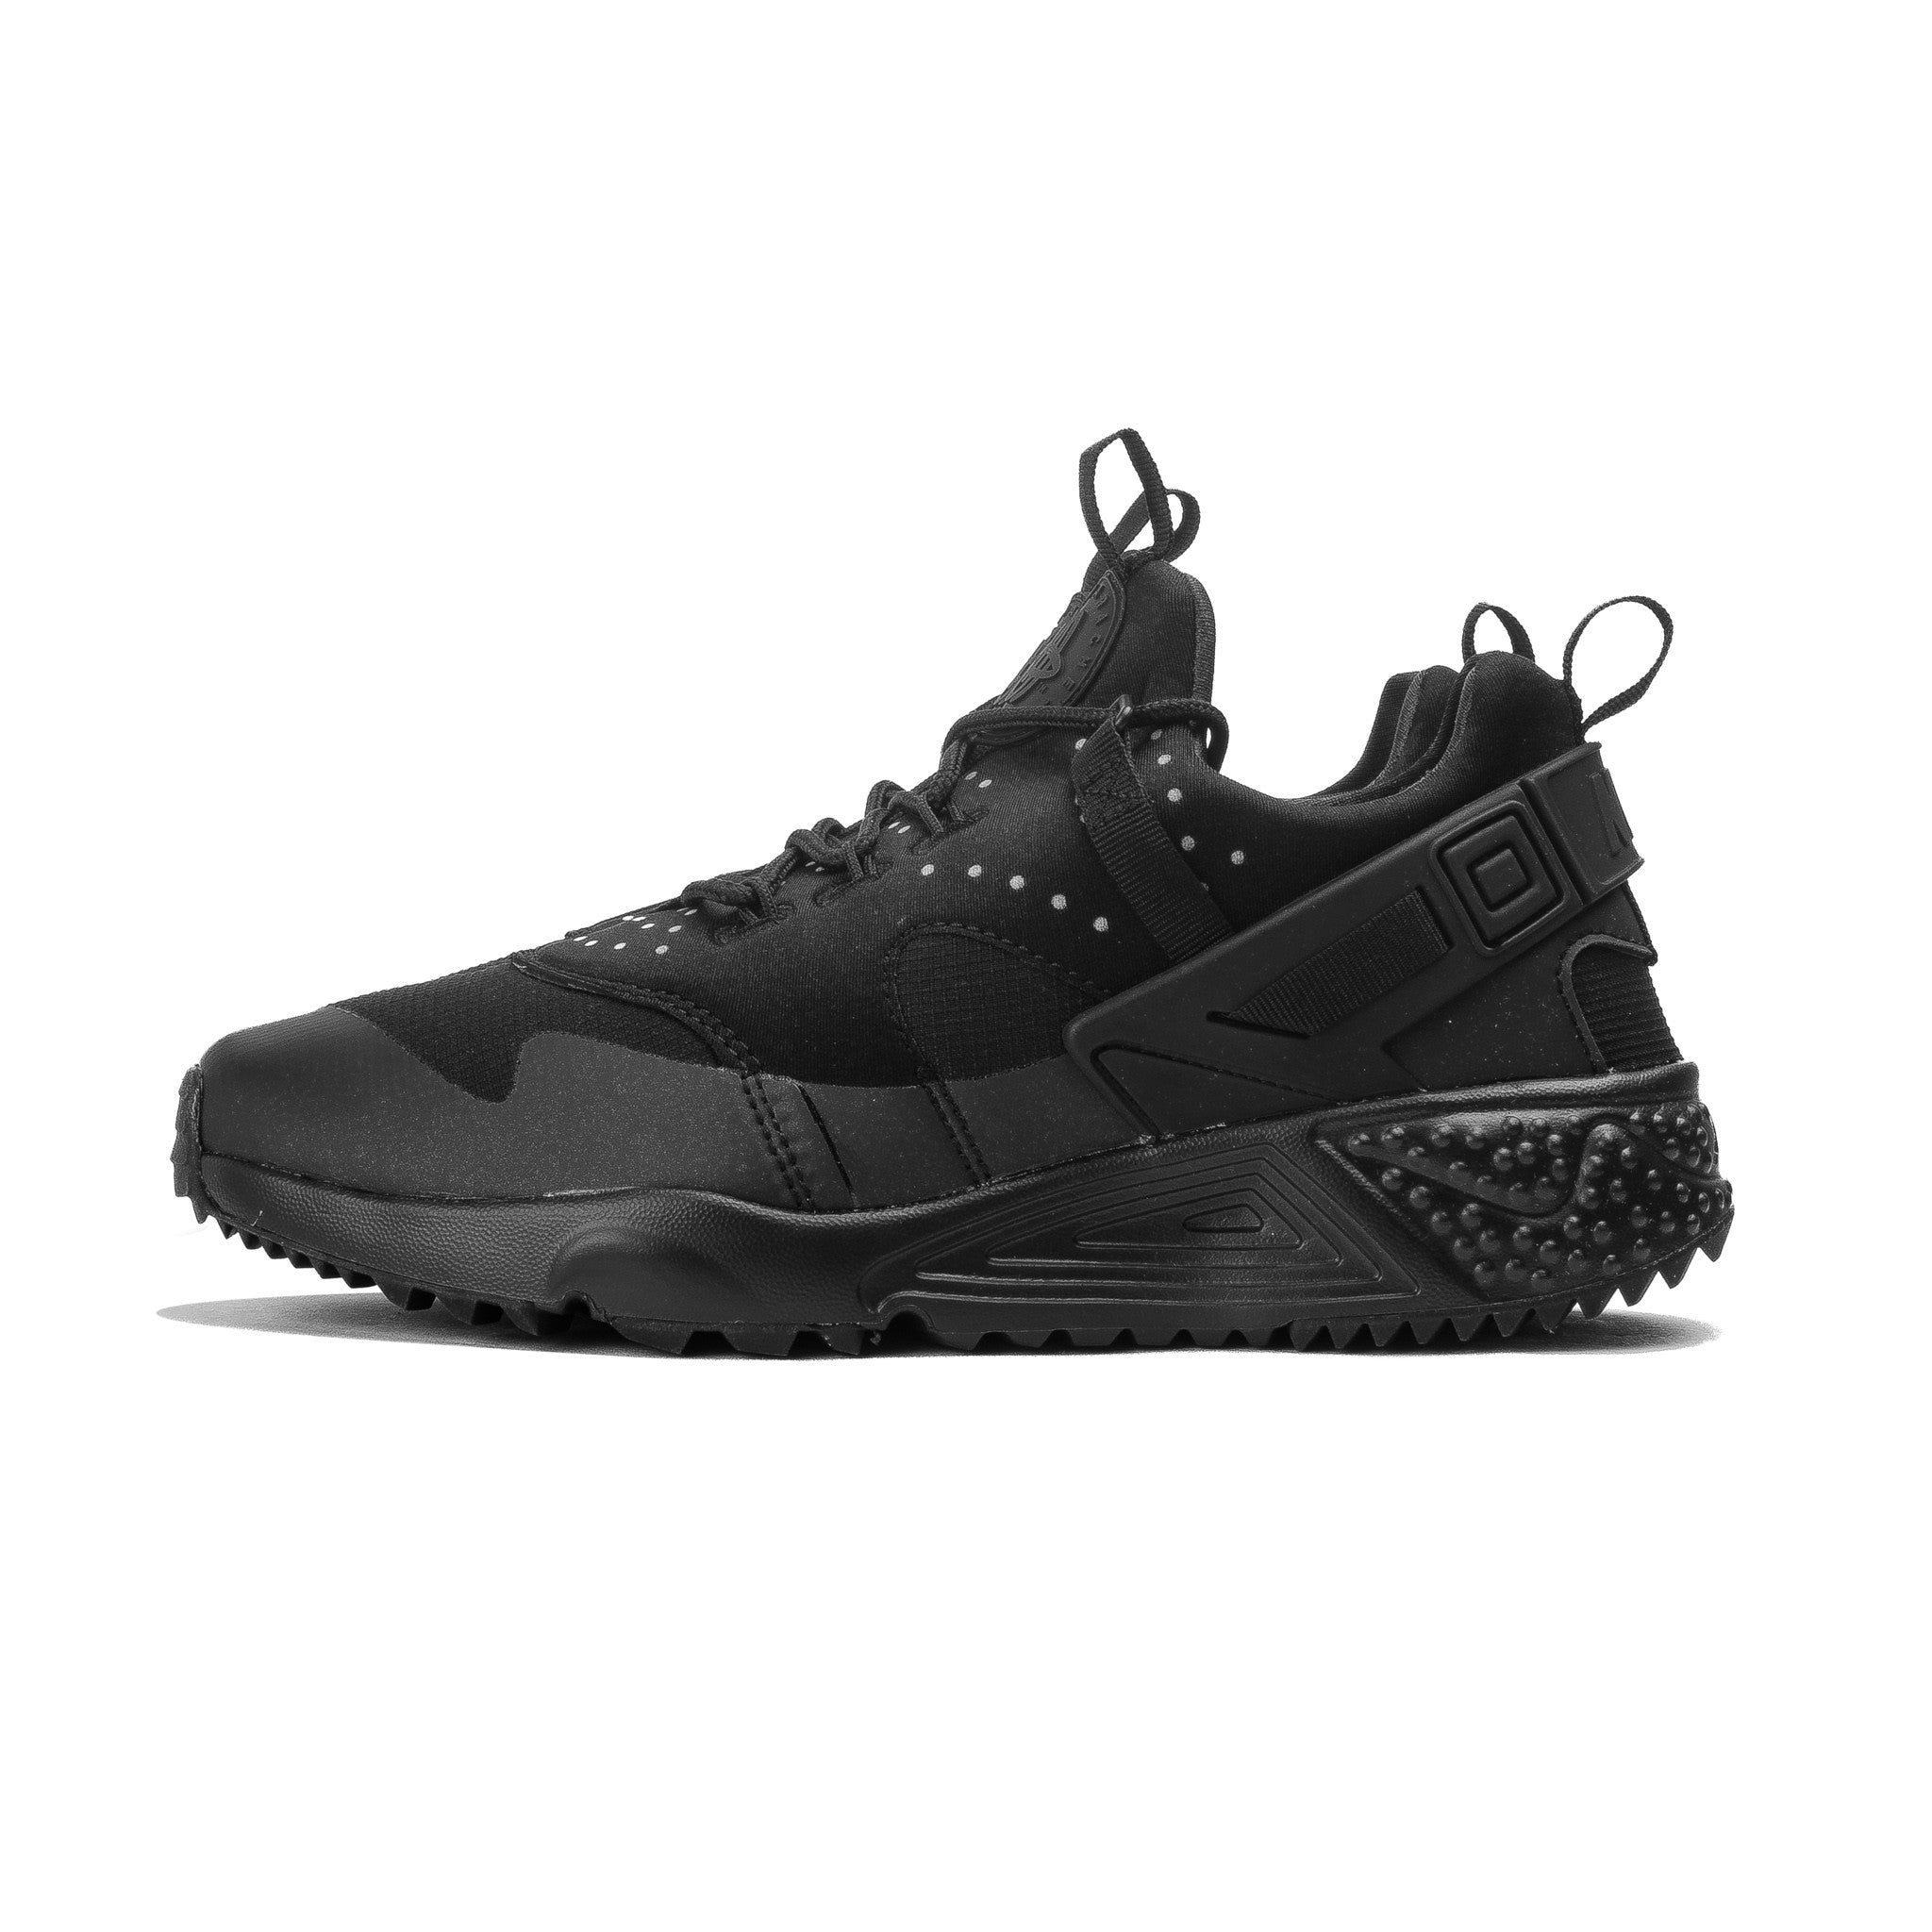 Air Huarache Utility 806807-004 Black